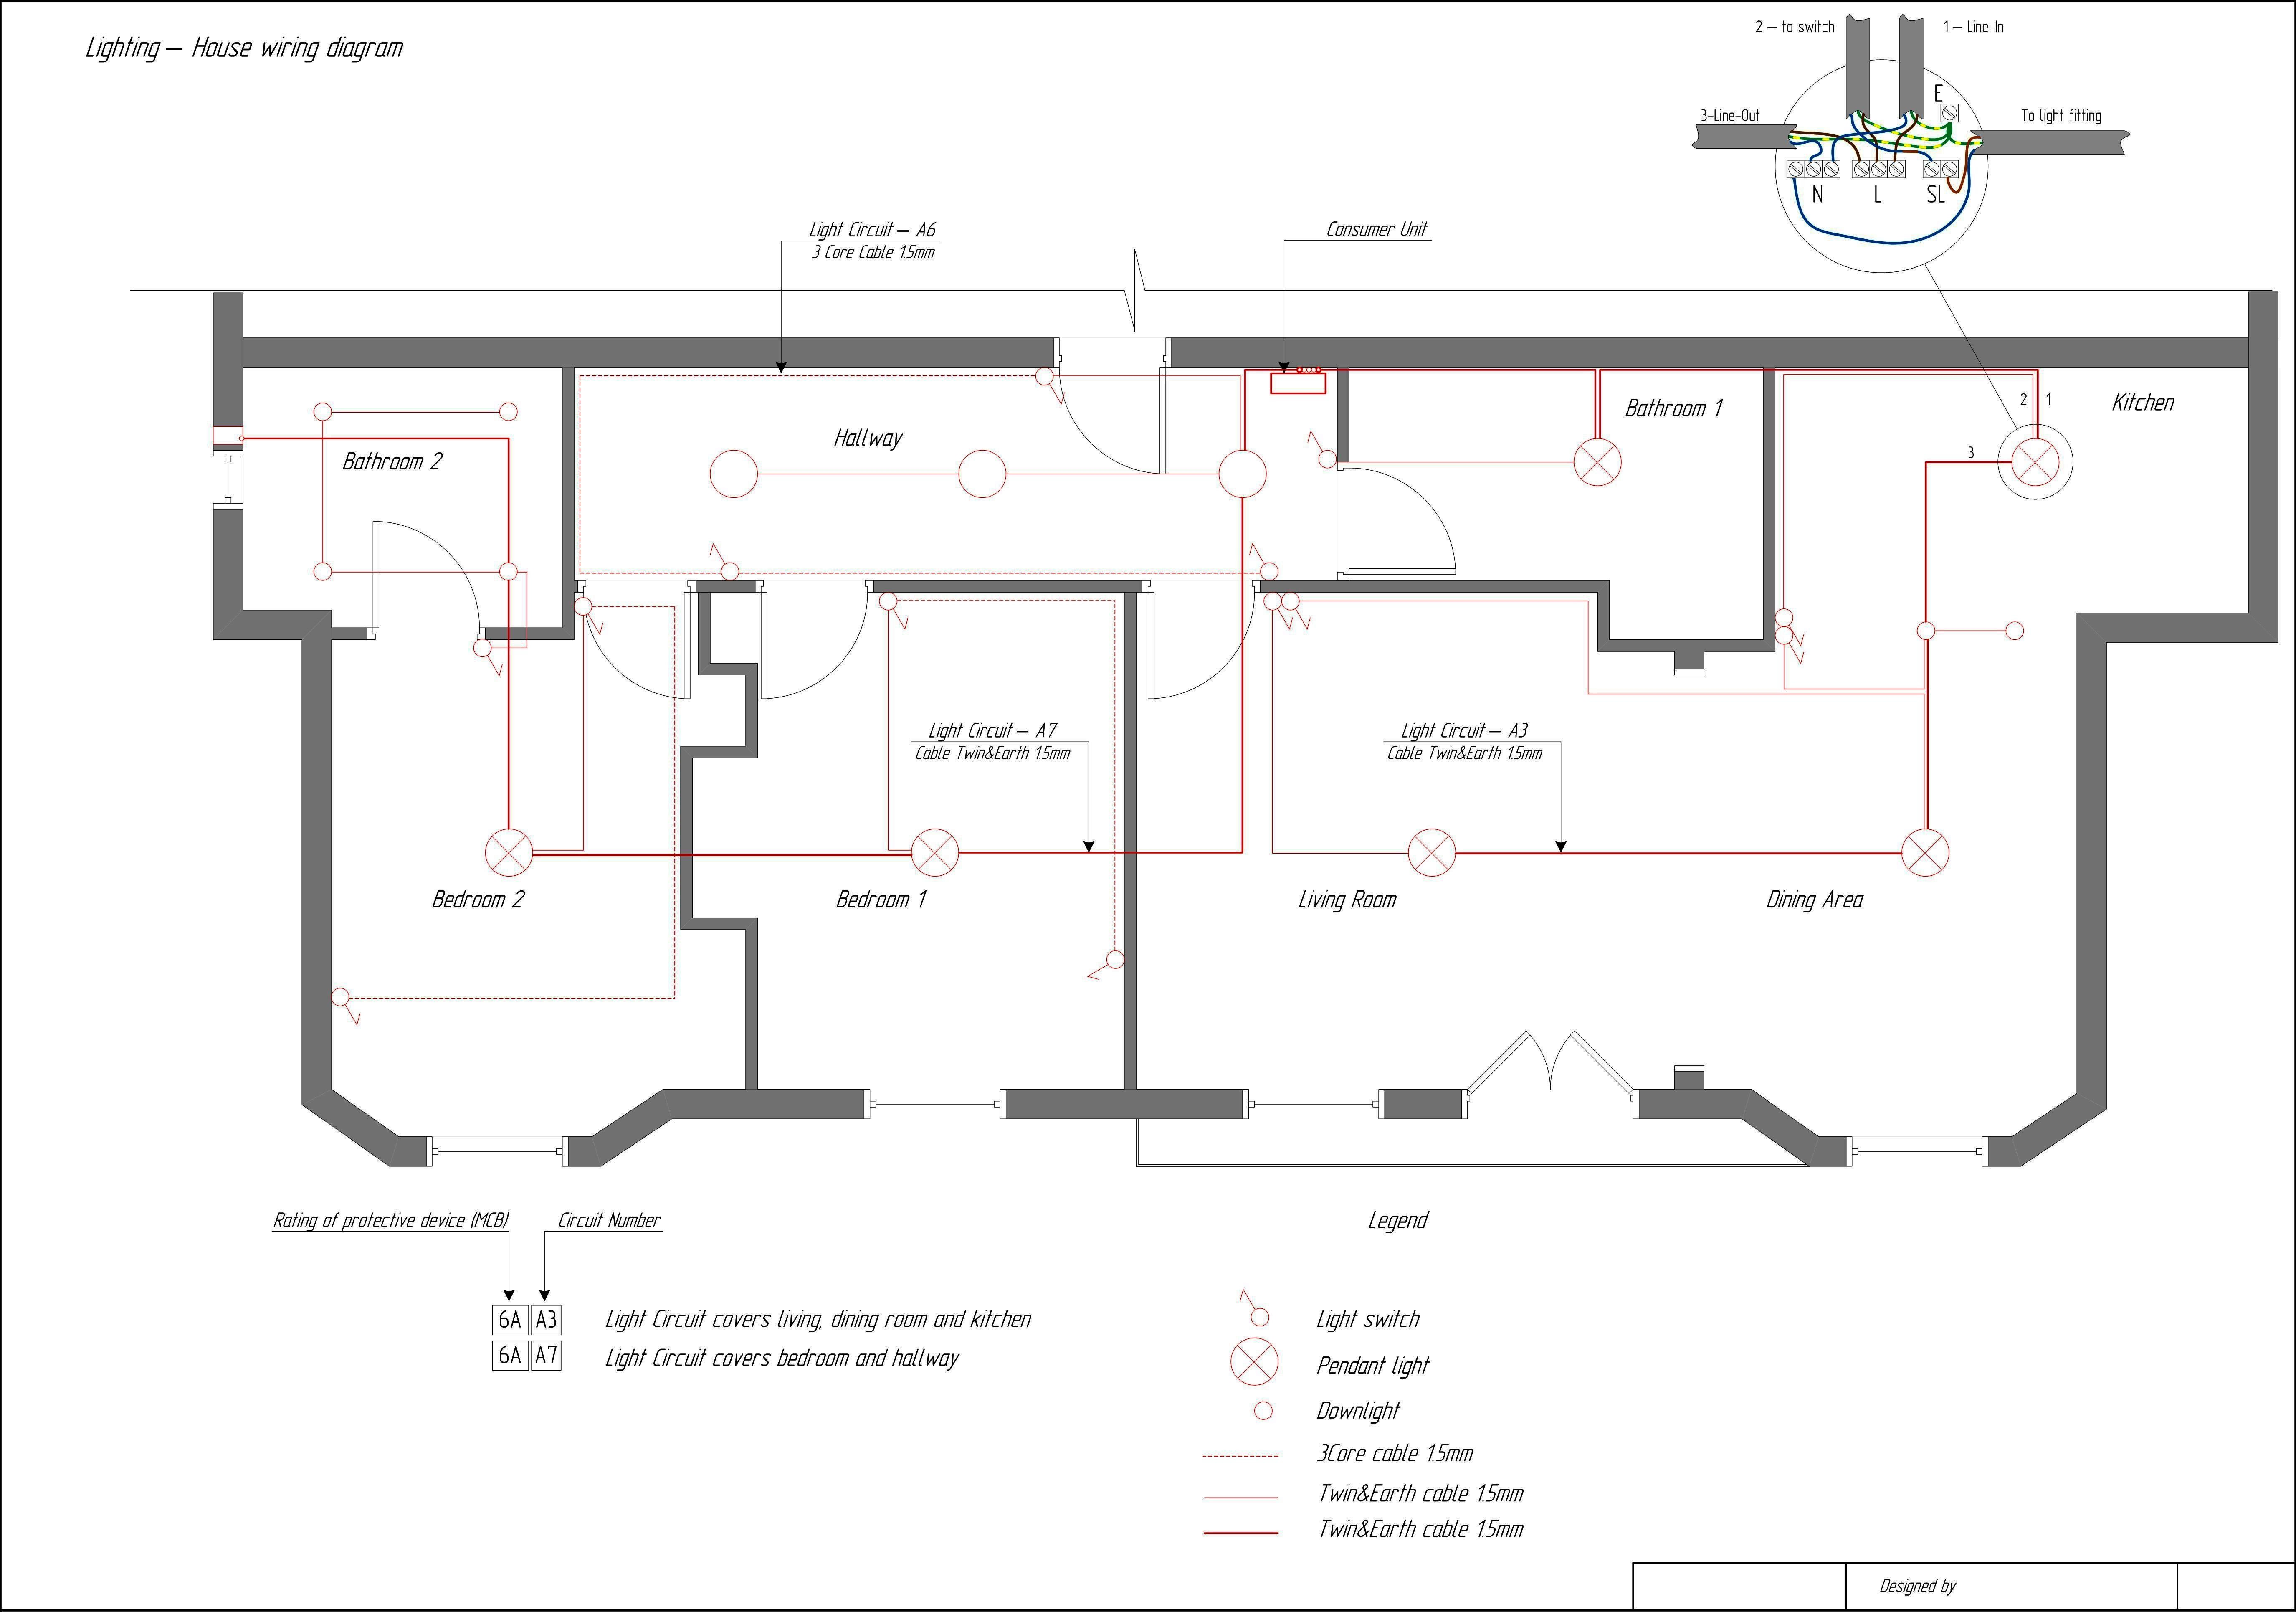 house wiring diagram most monly used diagrams for home wiring in rh officelightconstruction Ford Electrical